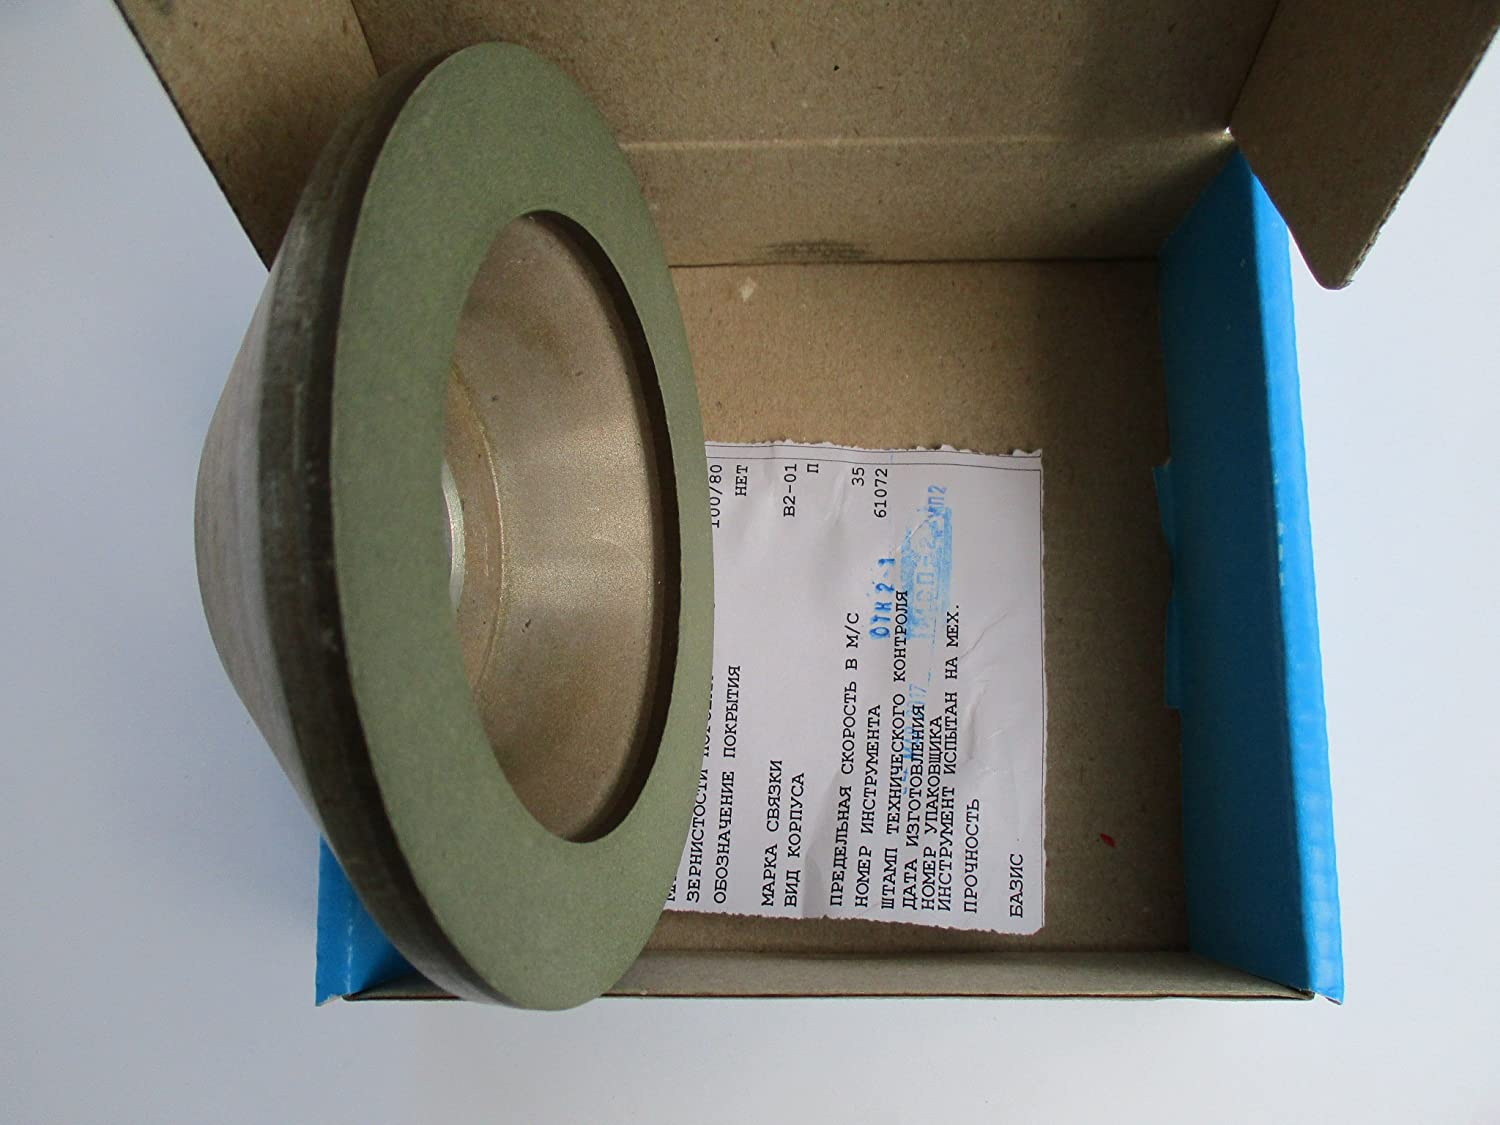 125x20mm. 150 Grit 125//100 Micron 20mm. 32mm. Dia 5 Width: 0.8 Type: 12A2-45 Cup Tool Diamond Grinding Wheel Hole 1.26